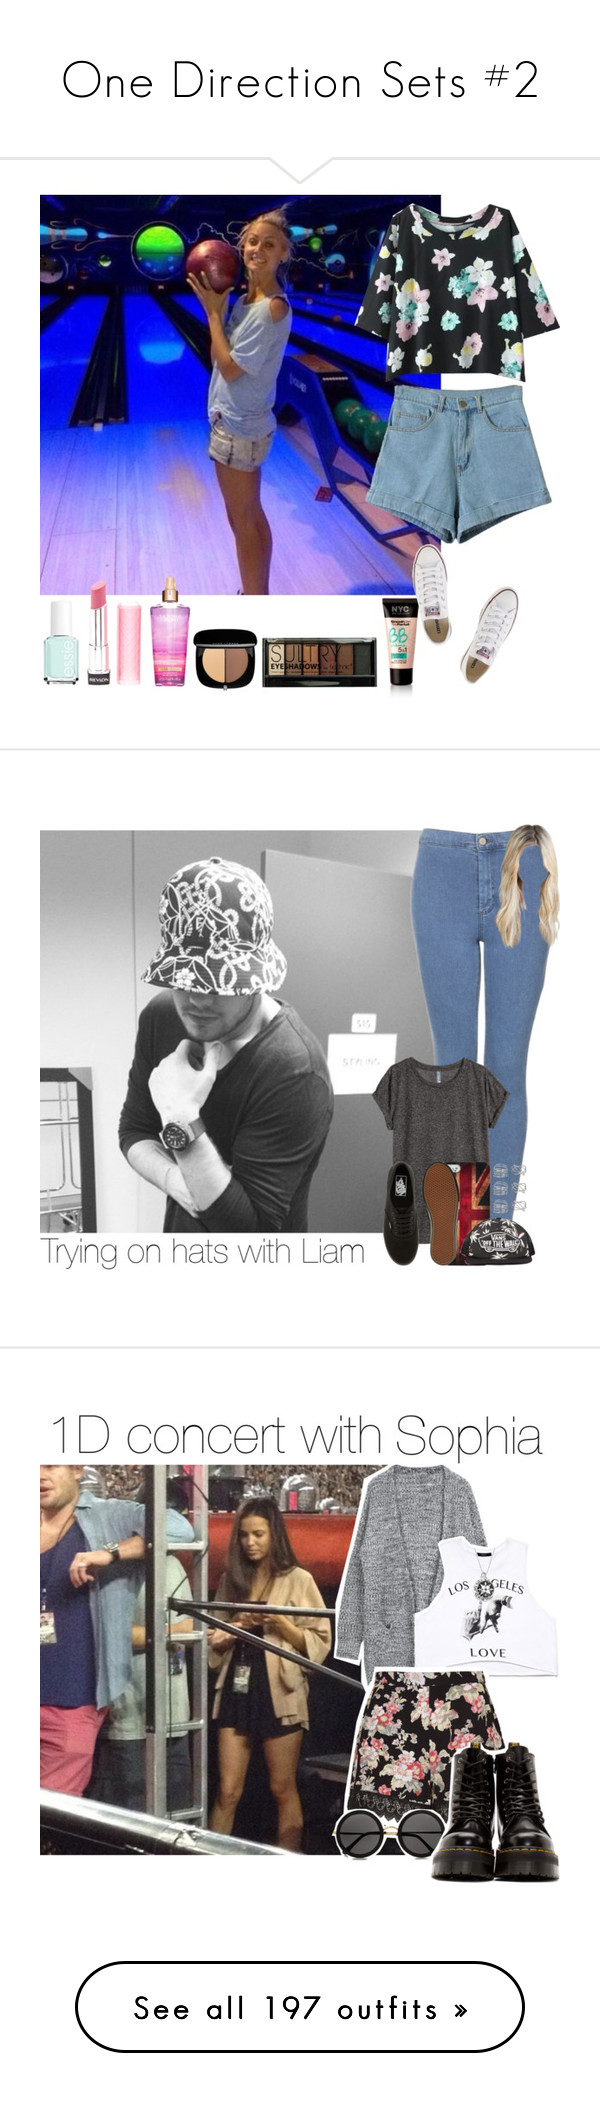 """""""One Direction Sets #2"""" by gingy333 ❤ liked on Polyvore featuring Essie, Revlon, Marc Jacobs, Boohoo, Converse, Topshop, Dorothy Perkins, H&M, Retrò and Vans"""